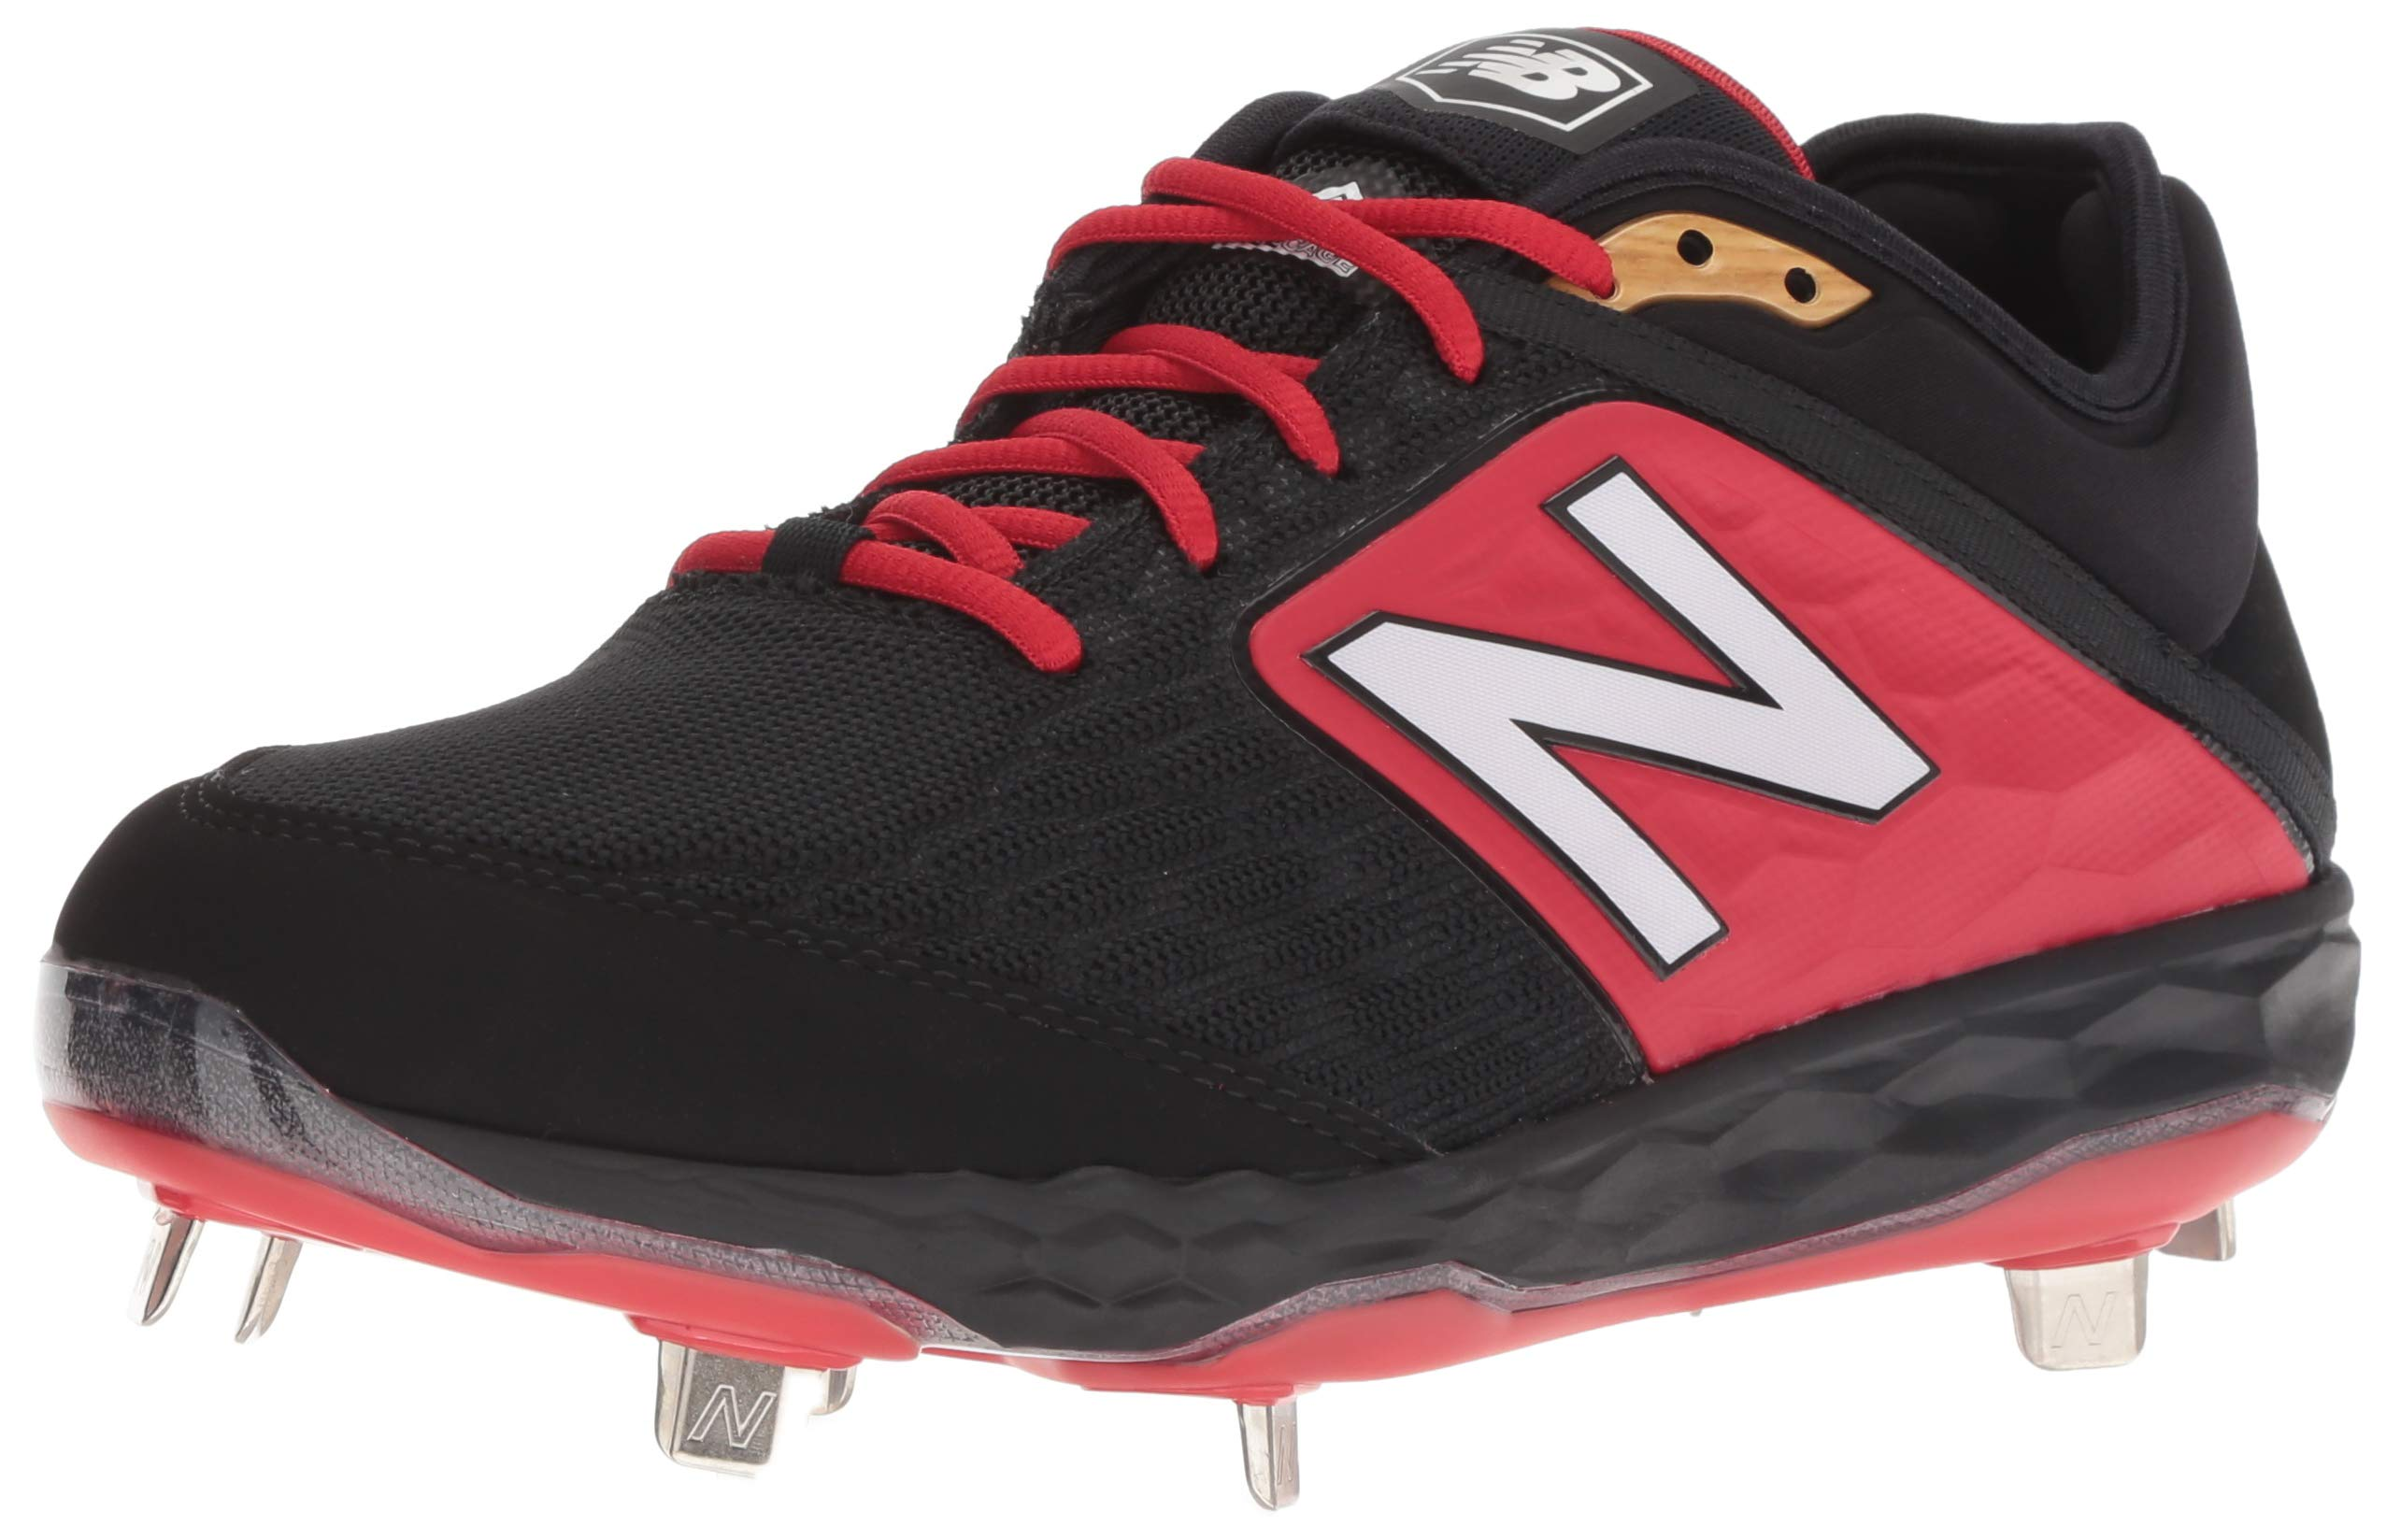 New Balance Mens 3000v4 Baseball Cleats Turf Trainers Shoe - Black/Red